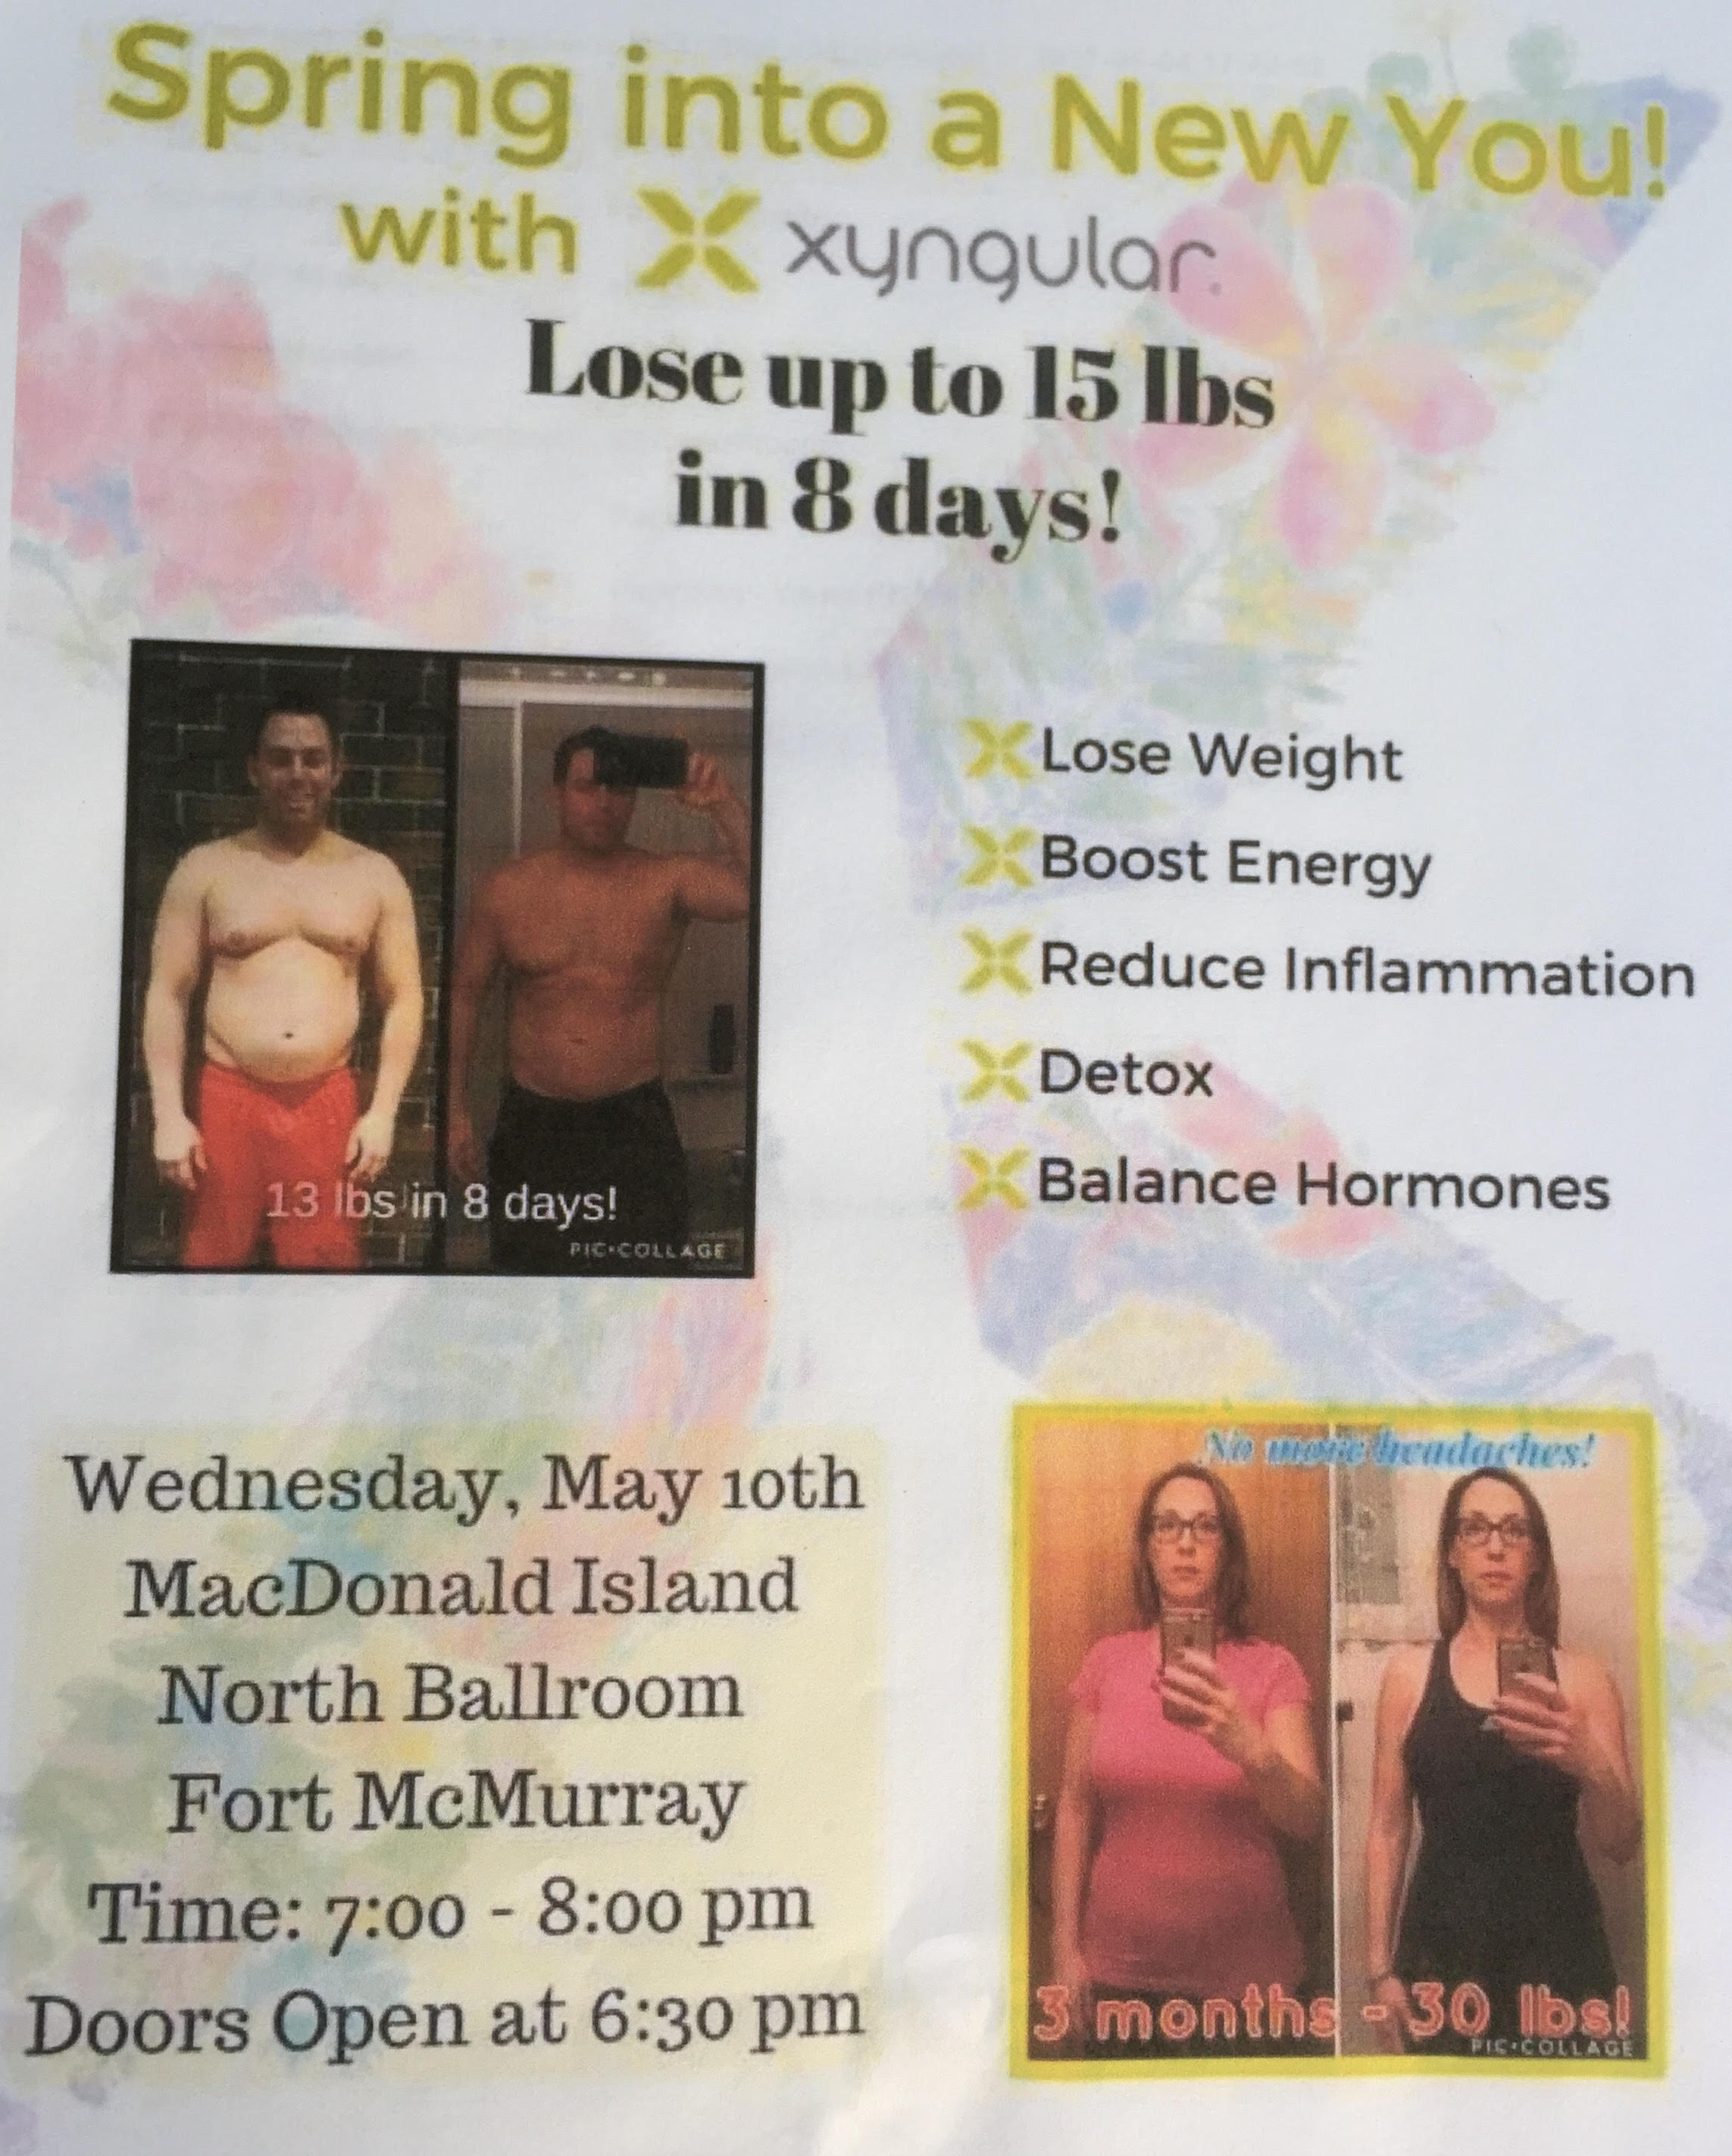 Why I'm Going To A Weight-Loss Supplement Program Meeting